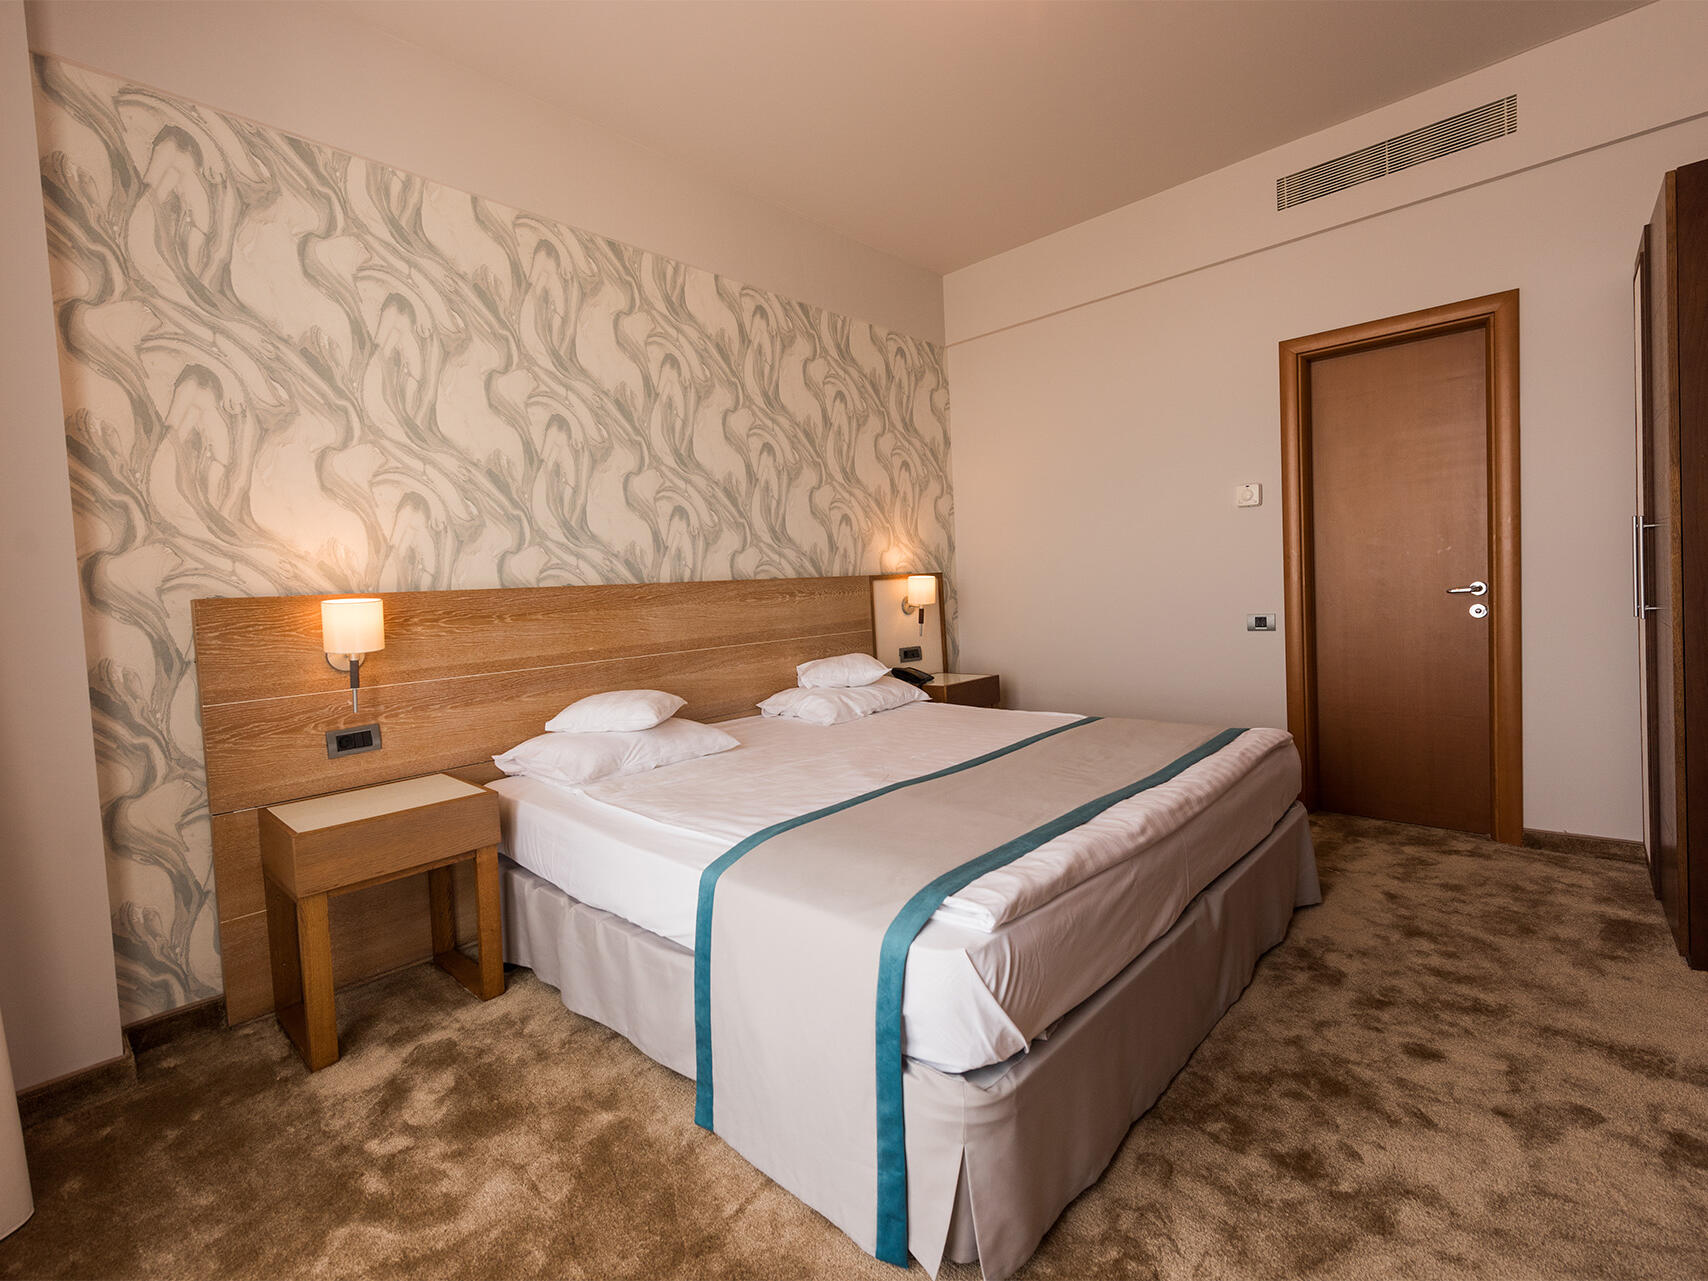 Presidential Suite at IAKI Conference & Spa Hotel in Mamaia